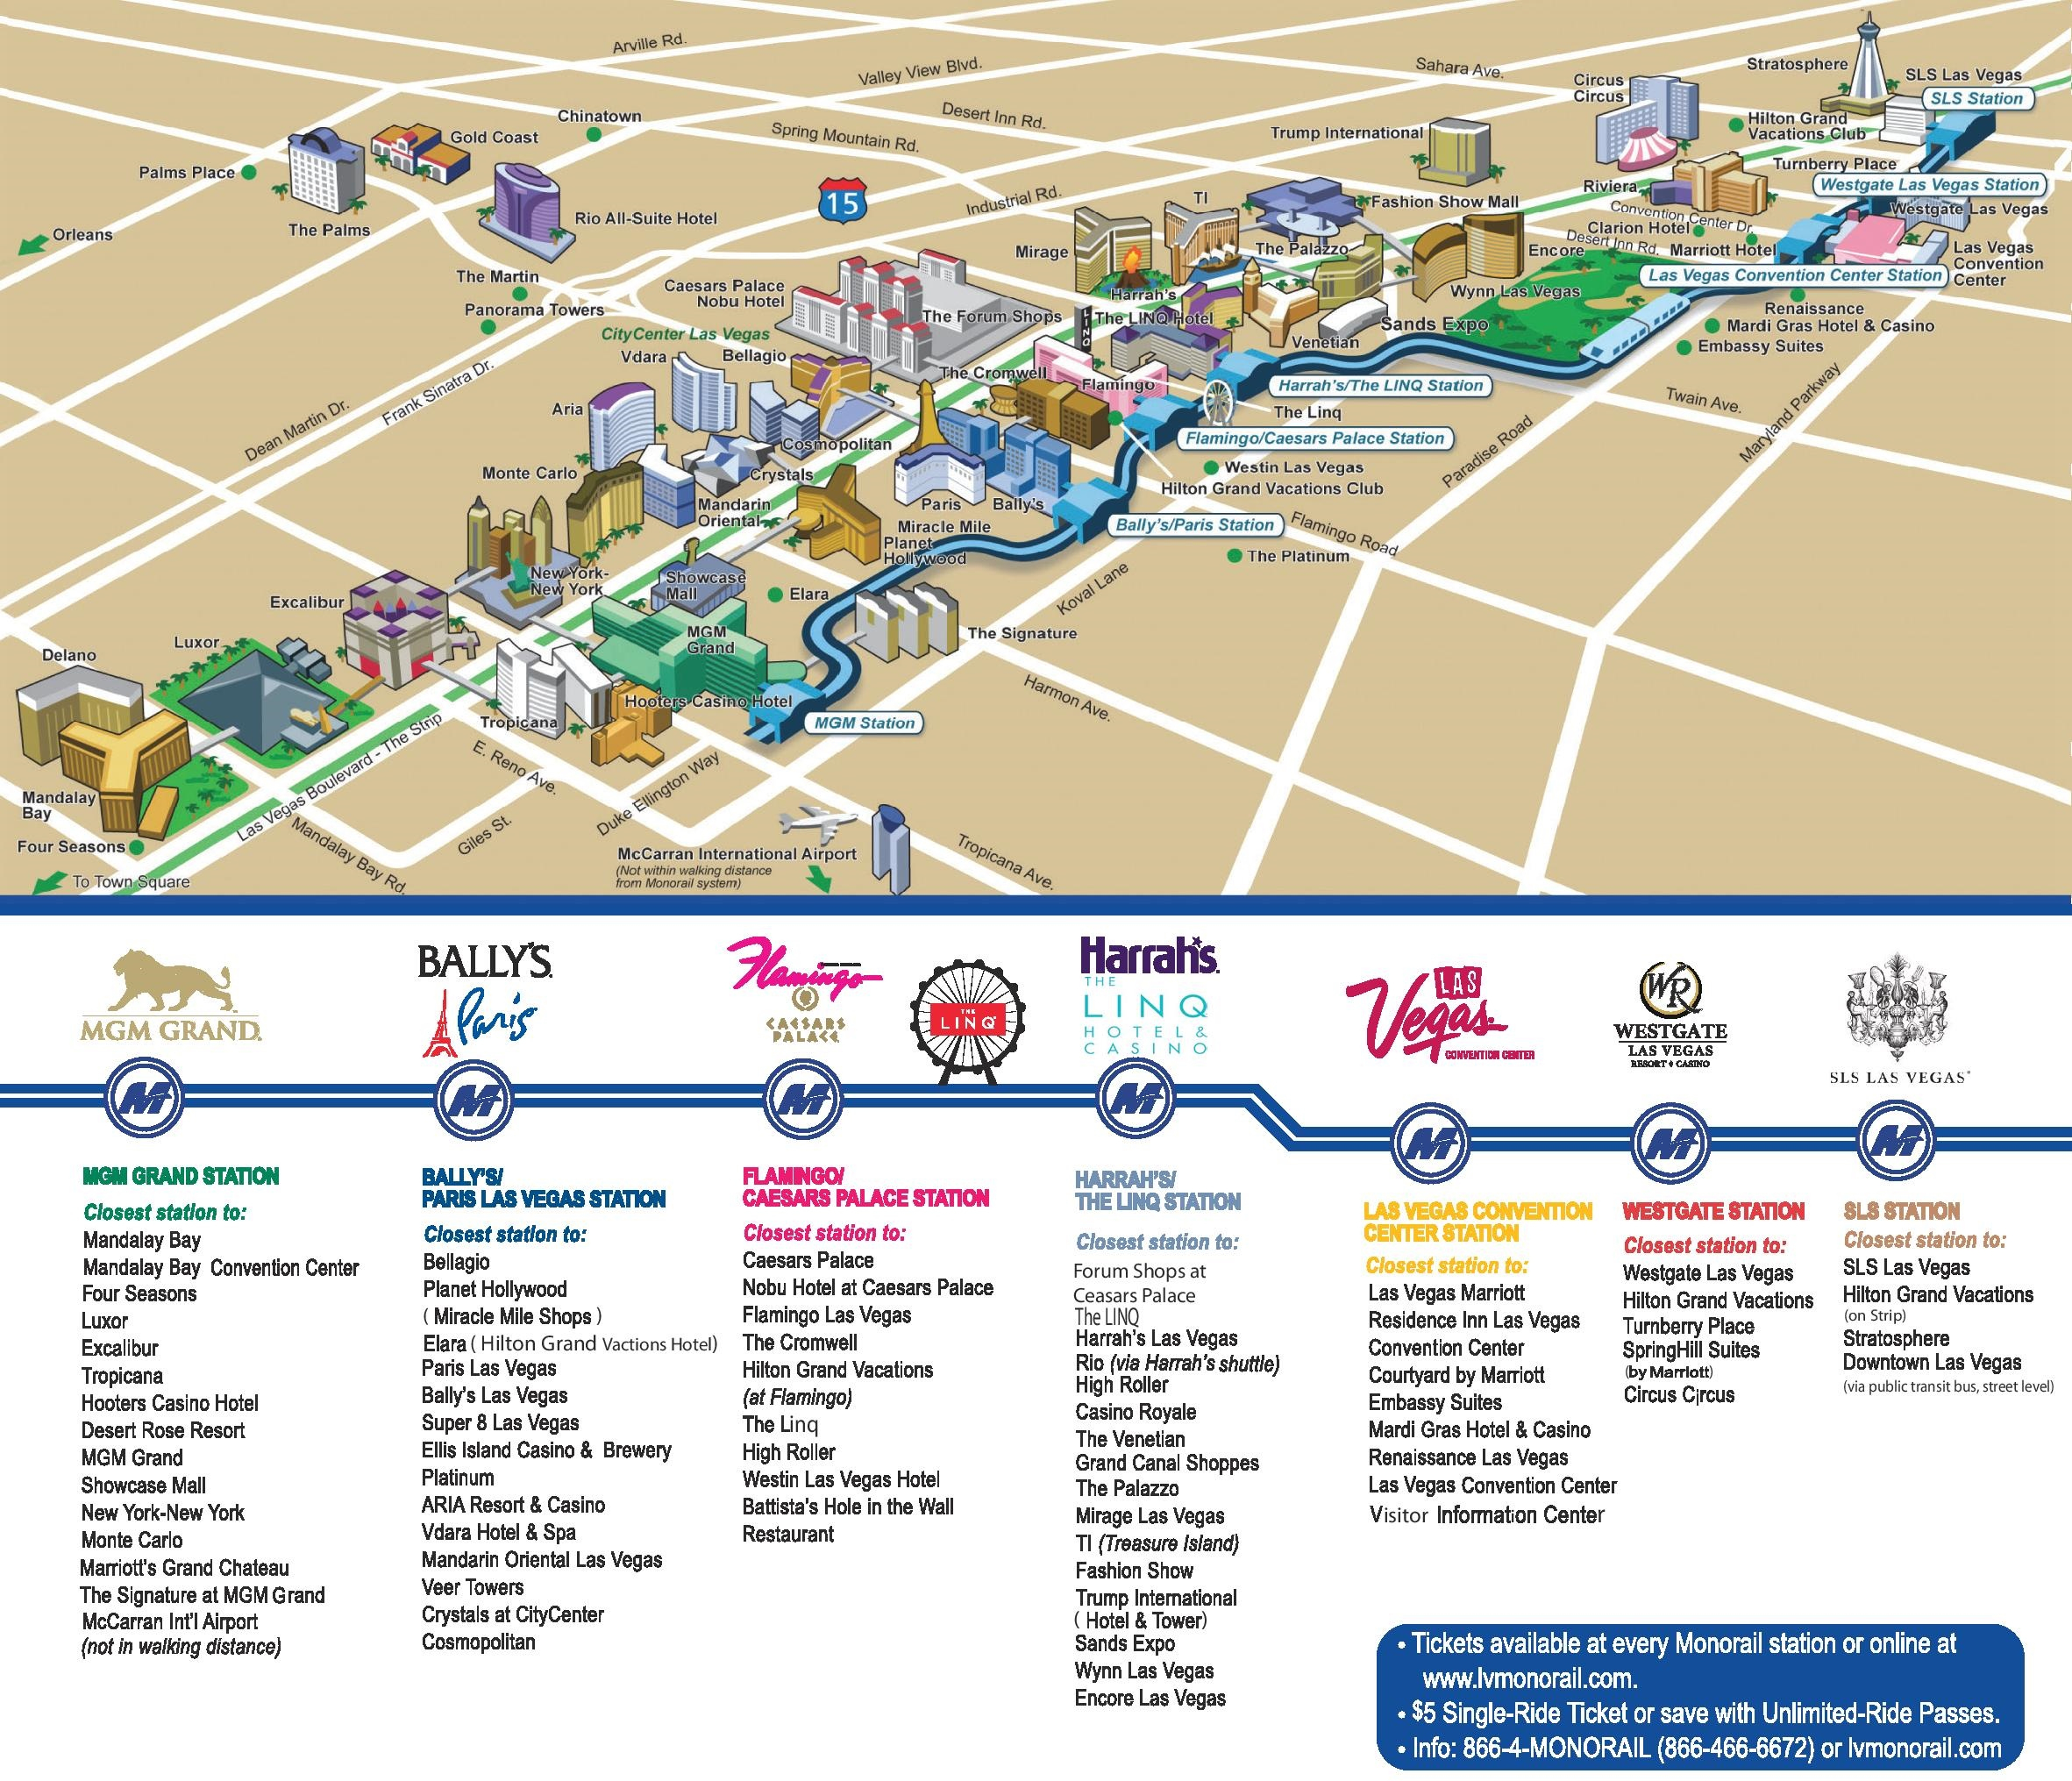 Las Vegas Strip Hotels And Casinos Map - Printable Map Of Vegas Strip